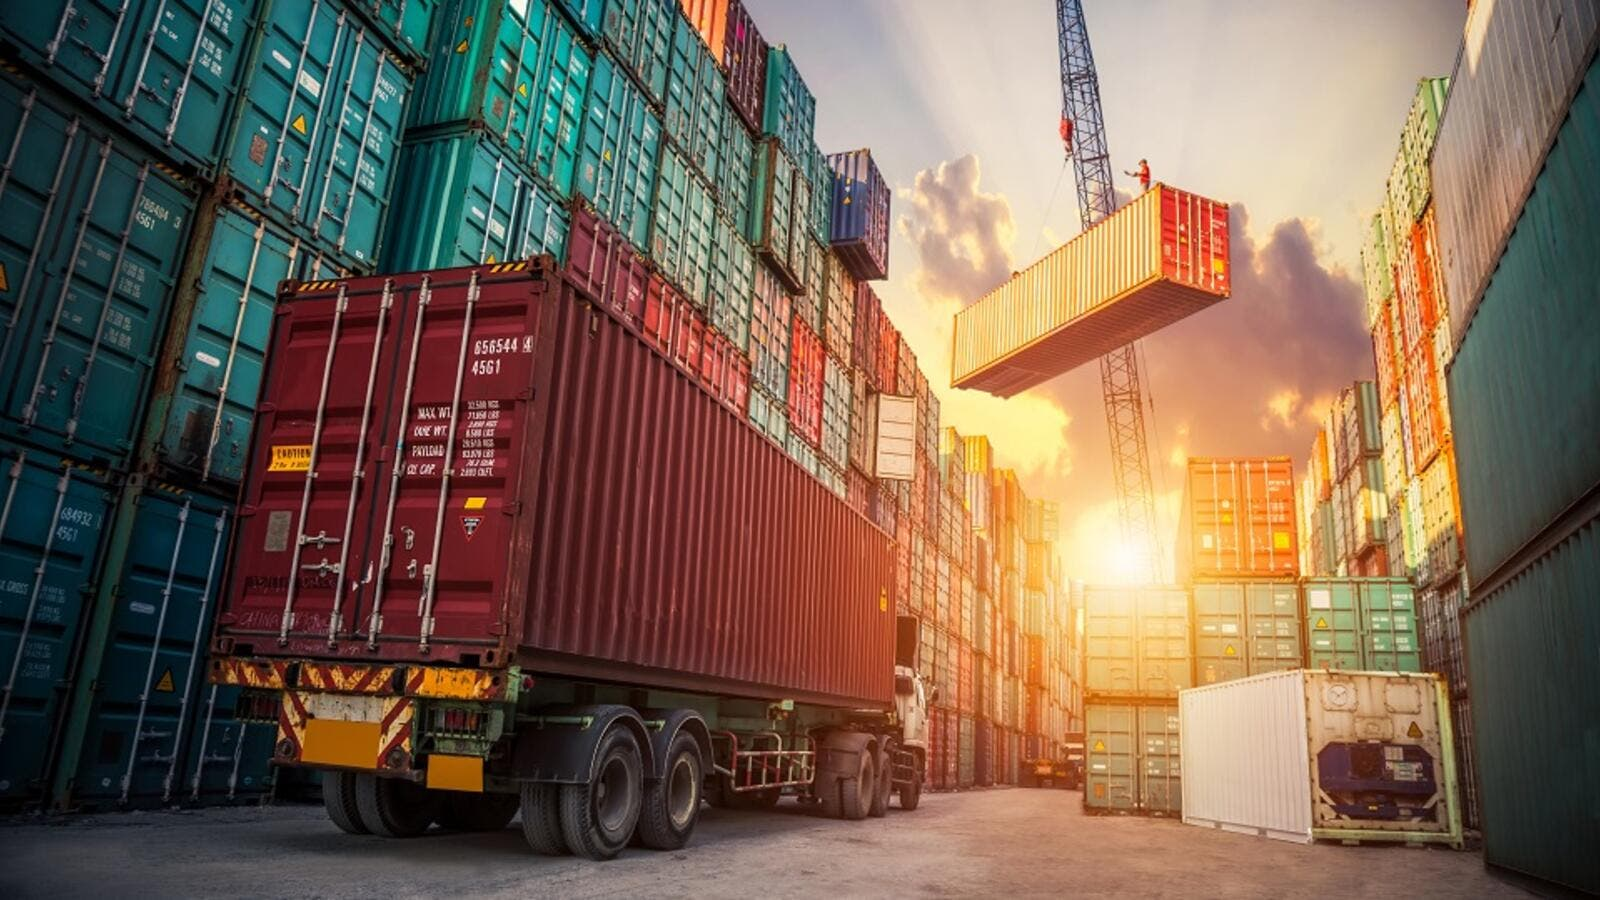 Saudi Arabia said its total merchandise exports increased by 12.5 percent in December 2018 year-on-year to reach $10 billion. (Shutterstock)